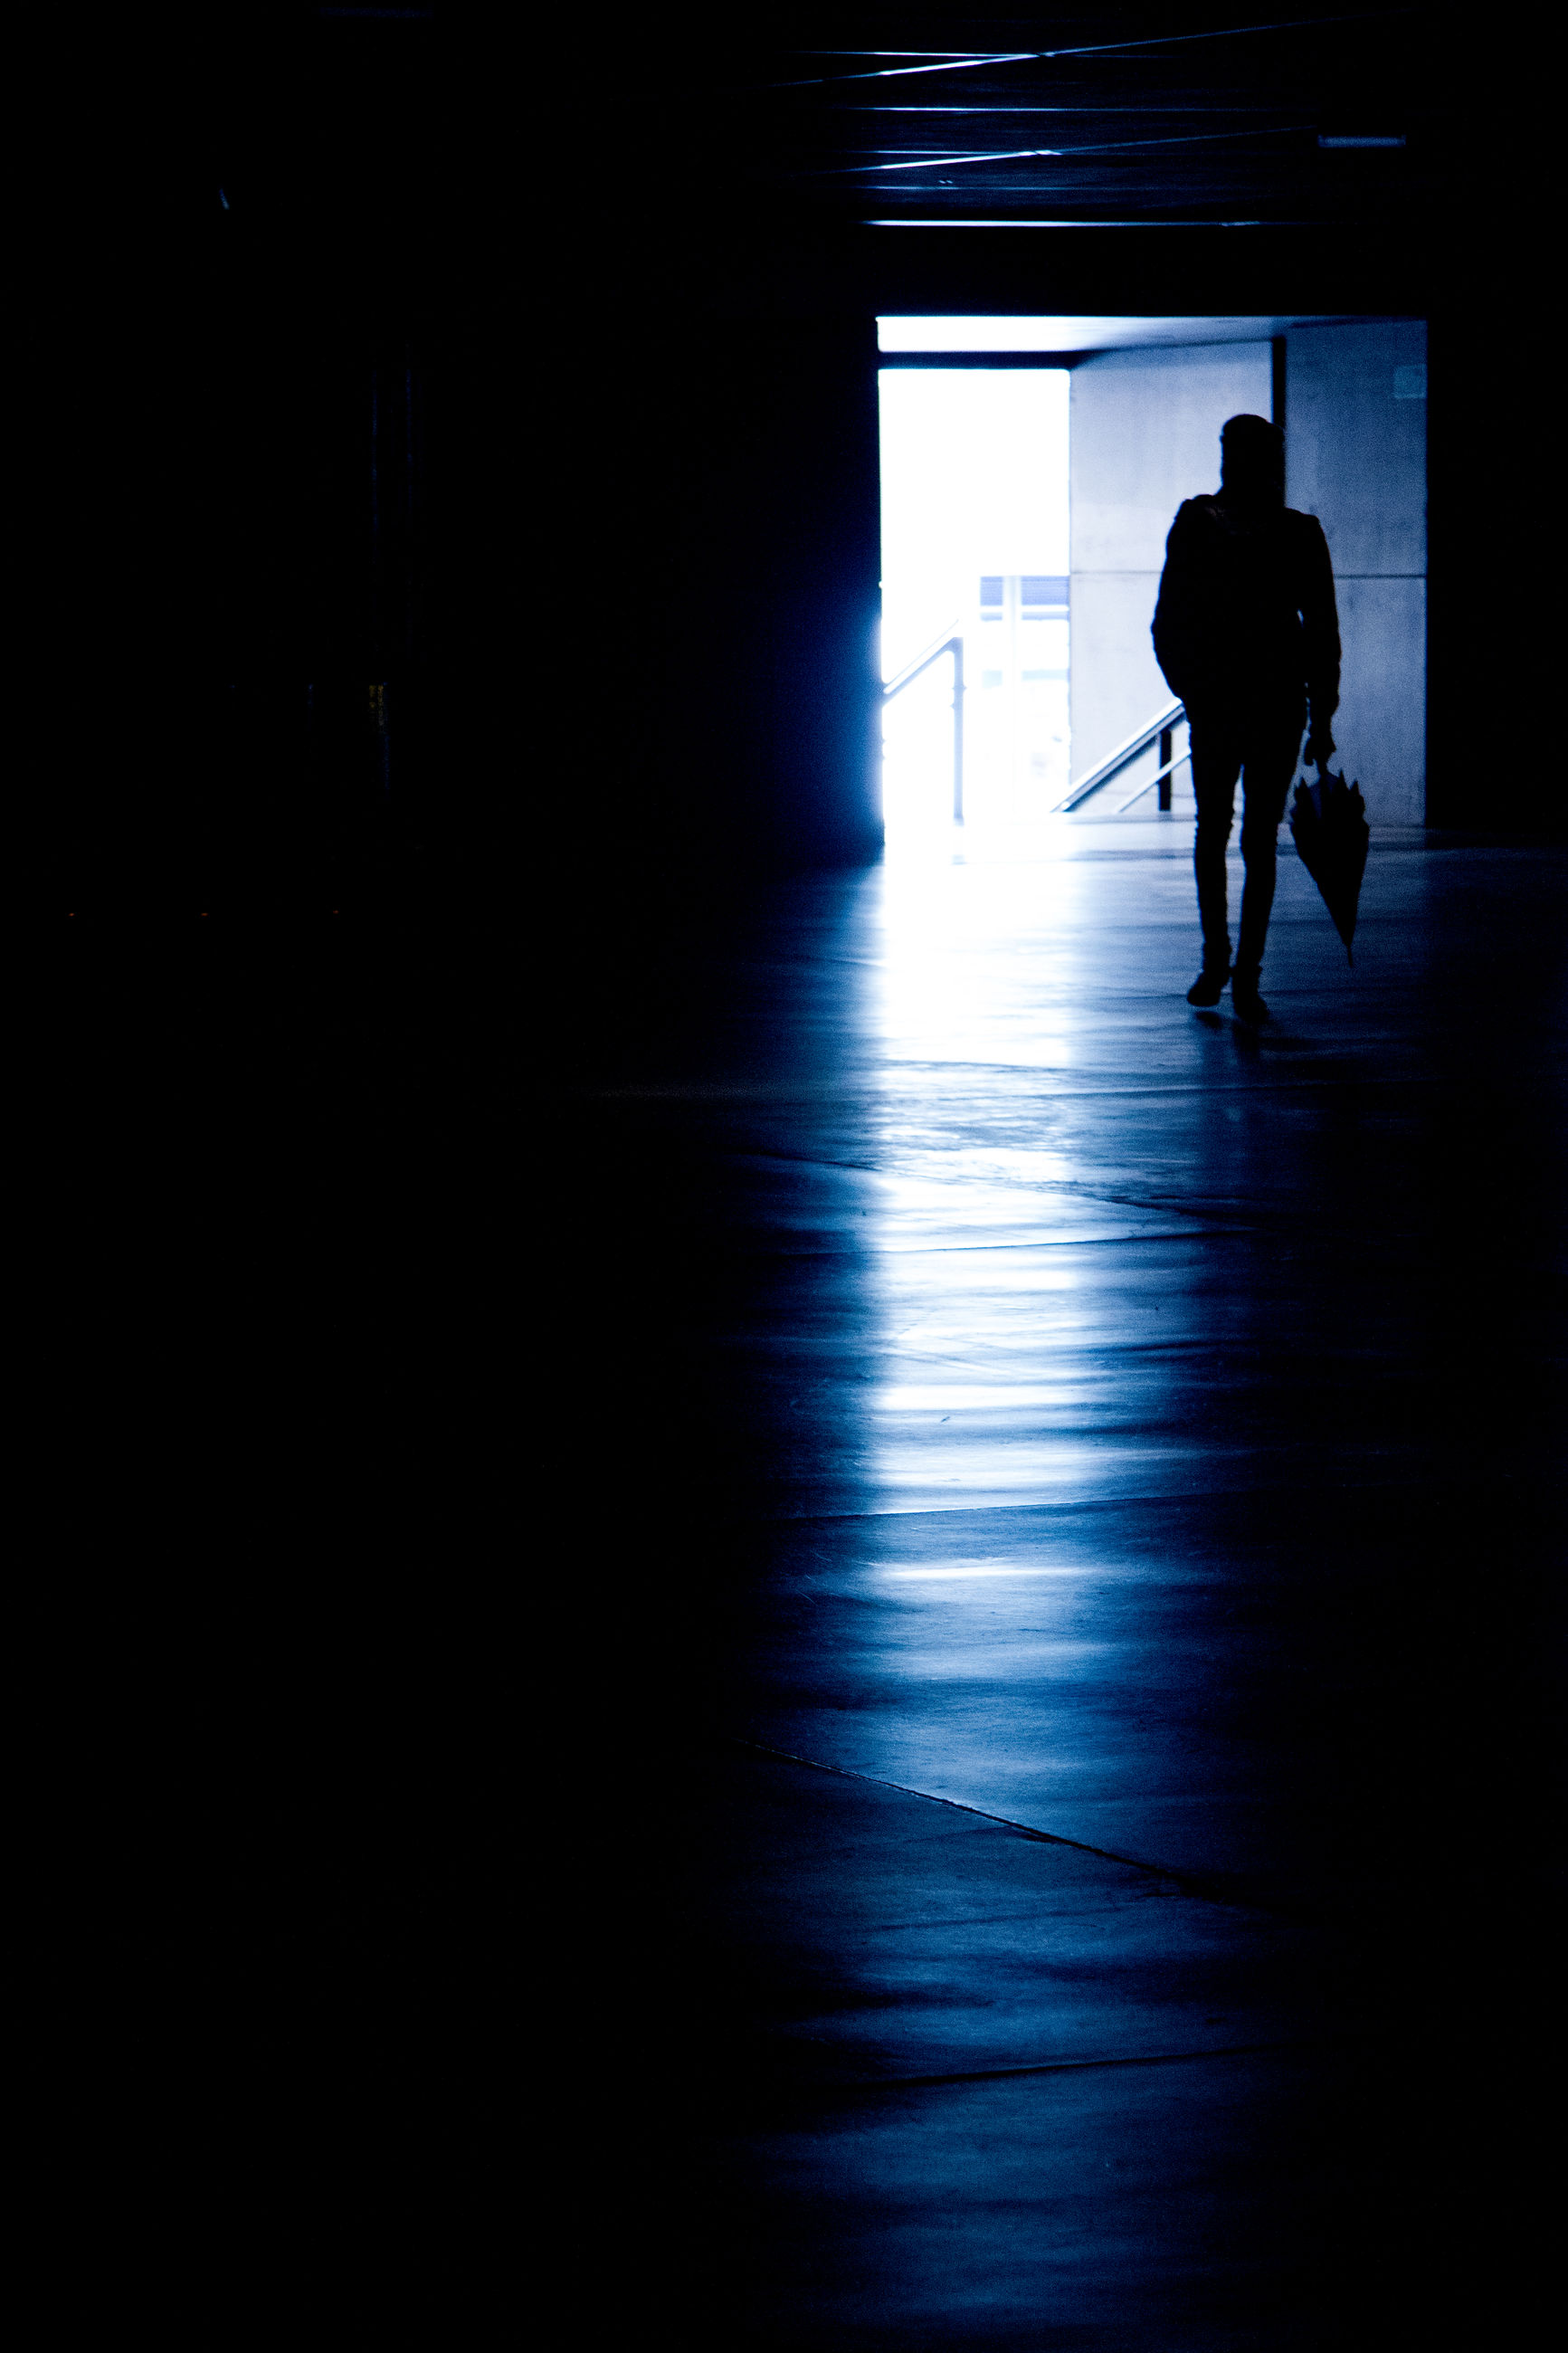 Full length of silhouette man with umbrella in building